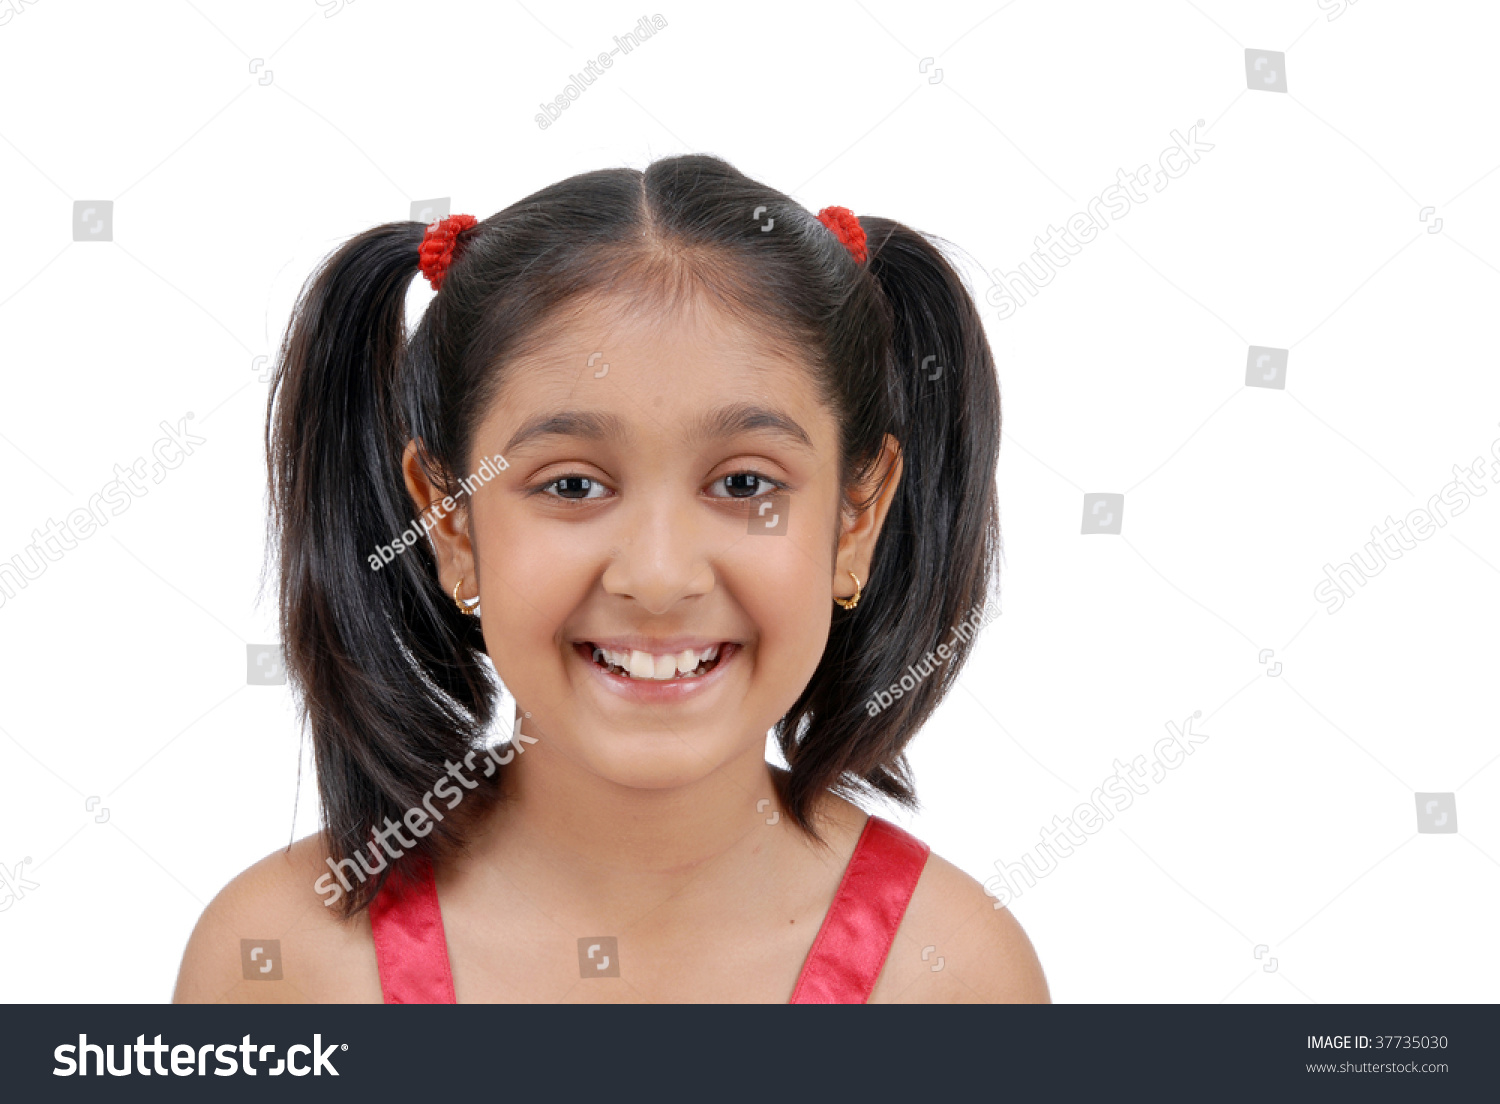 89 years old cute girl stock photo (royalty free) 37735030